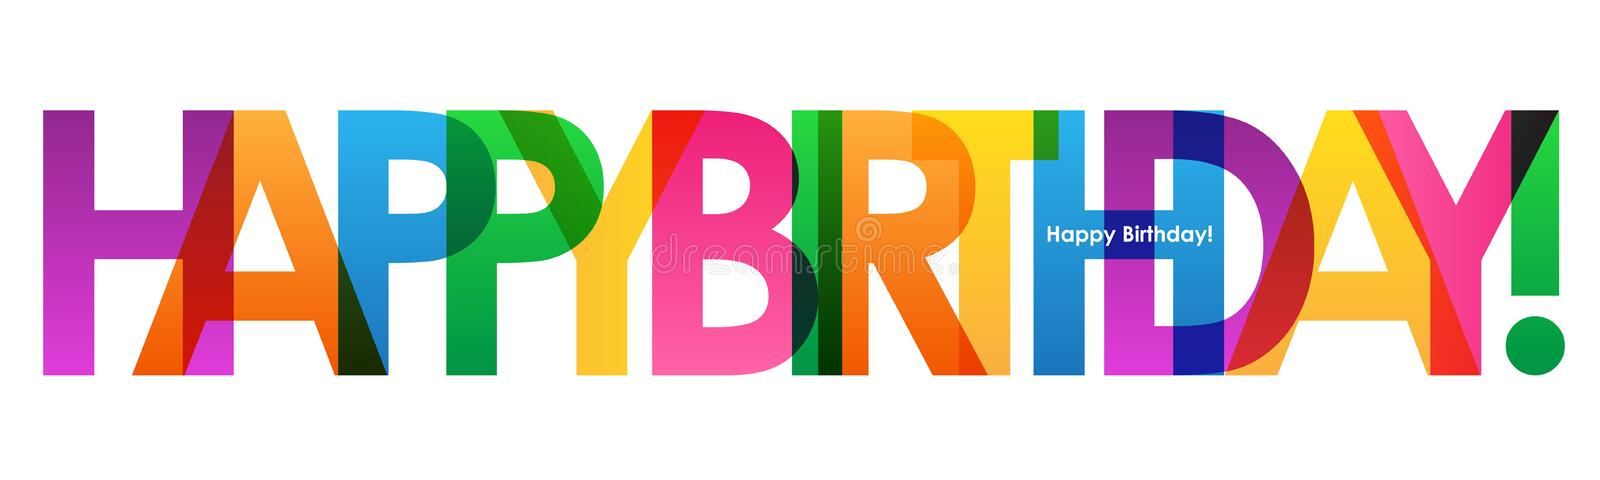 Colorful HAPPY BIRTHDAY overlapping semi-transparent letters banner stock images